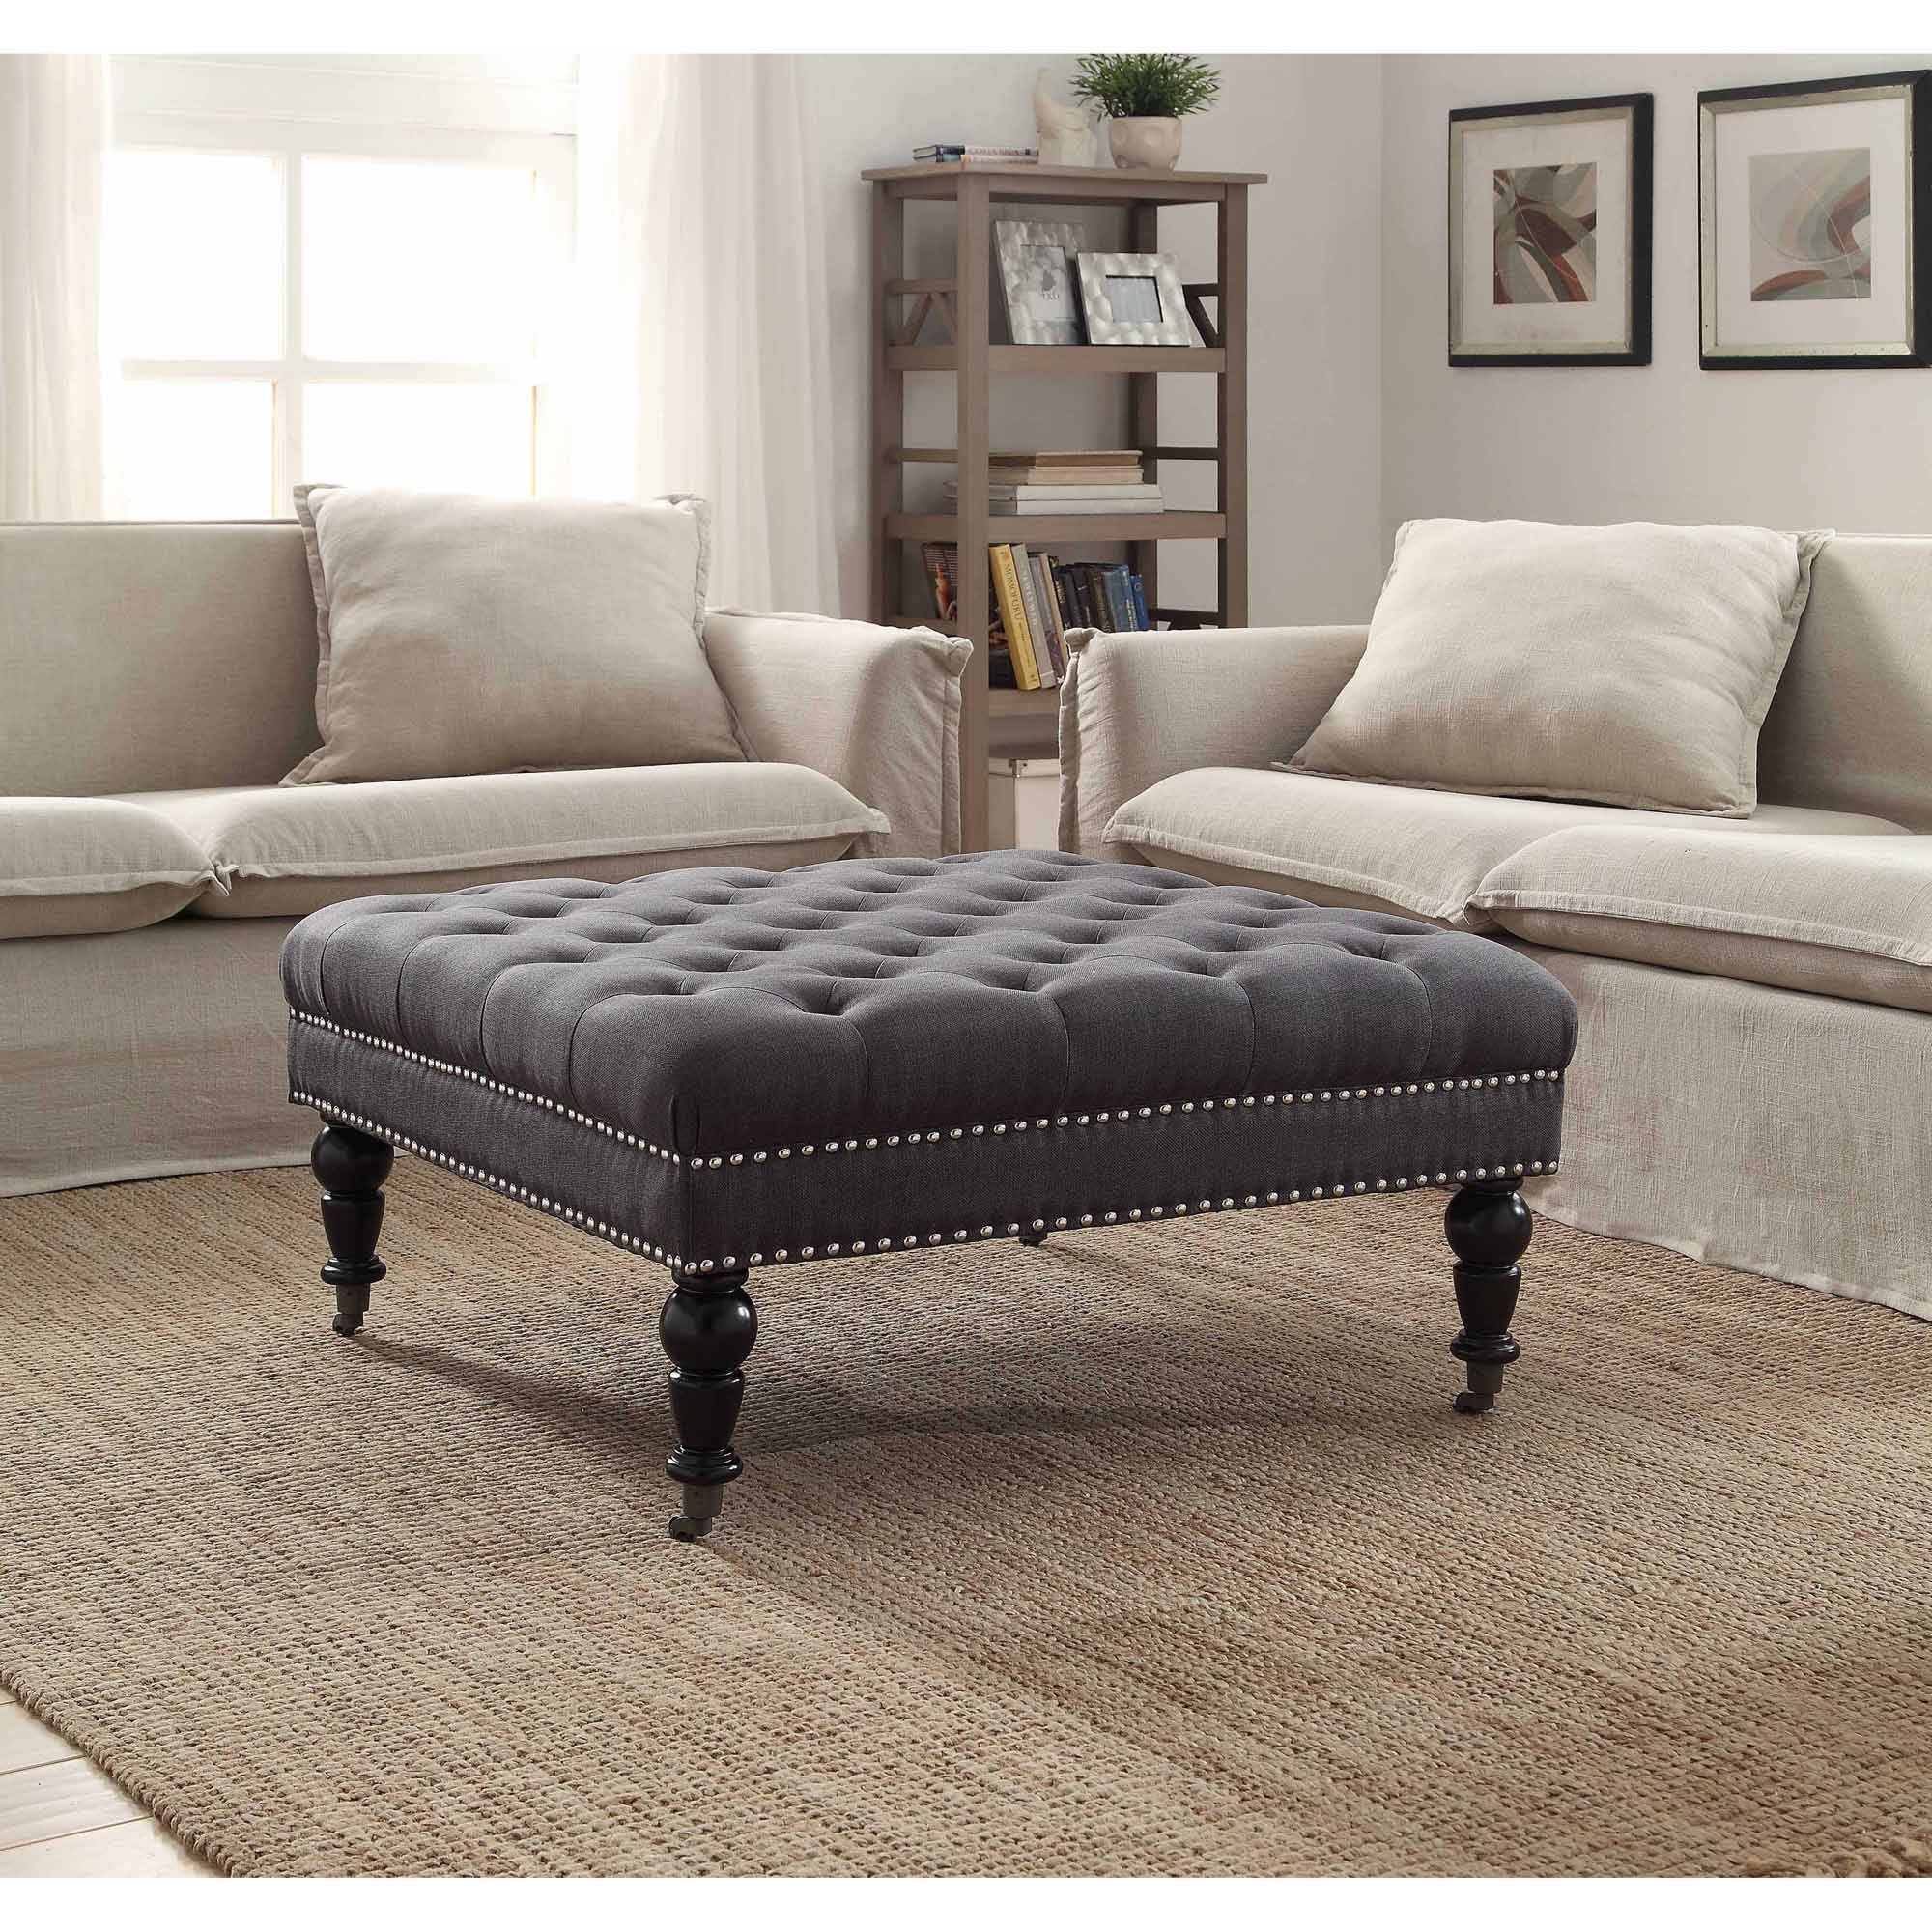 Linon Isabelle Square Tufted Ottoman, Multiple Colors, 17.72 inch Height